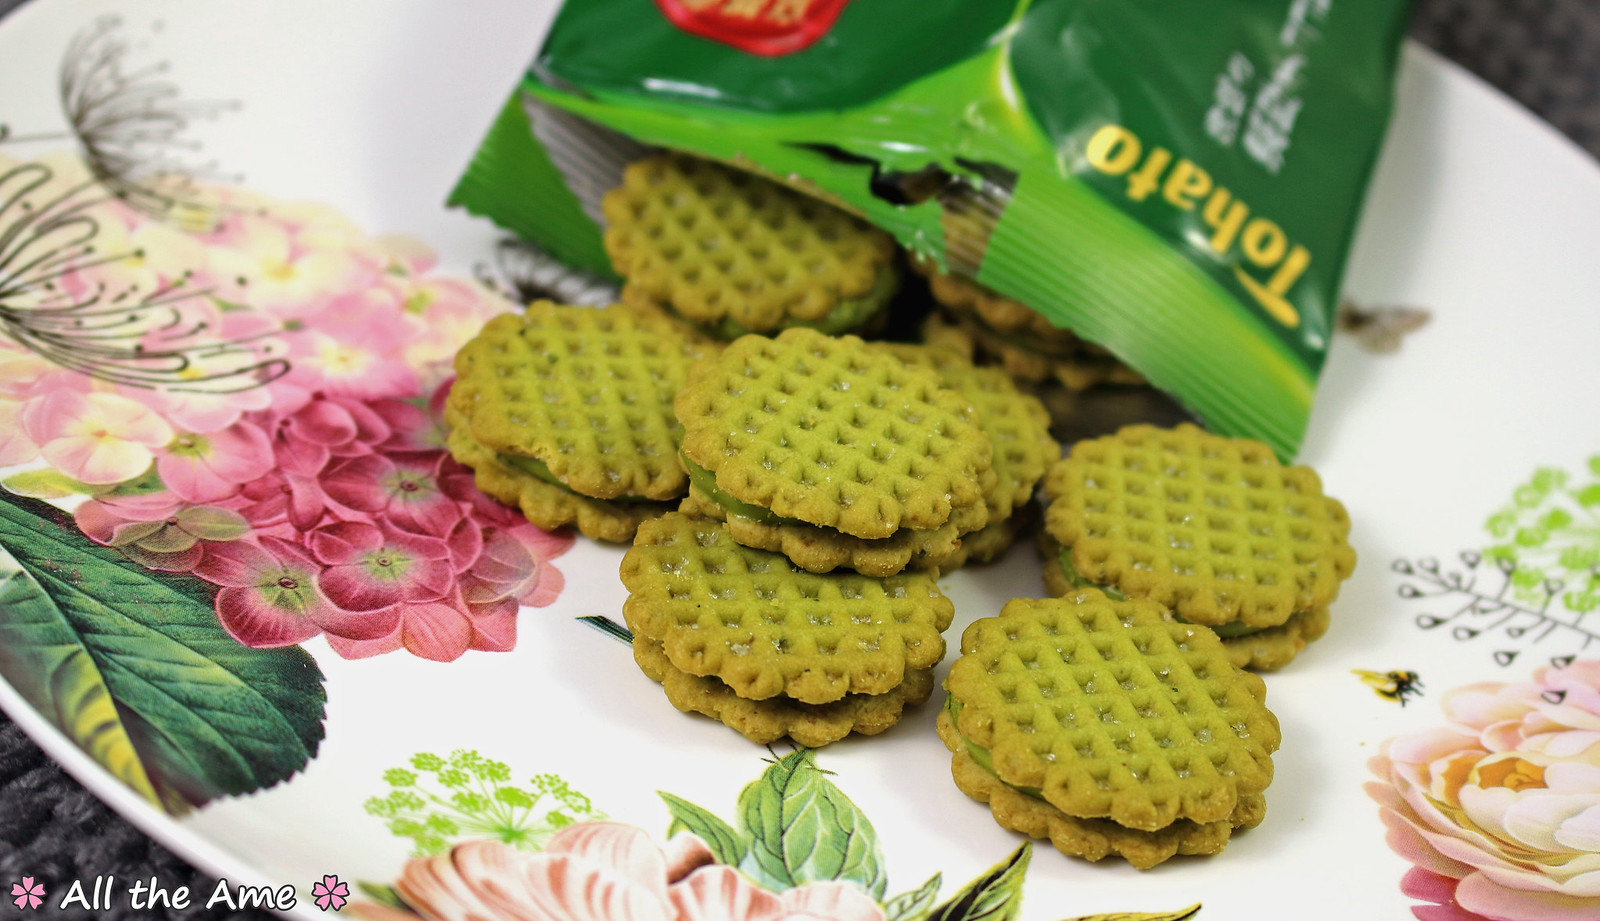 Harvest Rich Matcha Biscuits